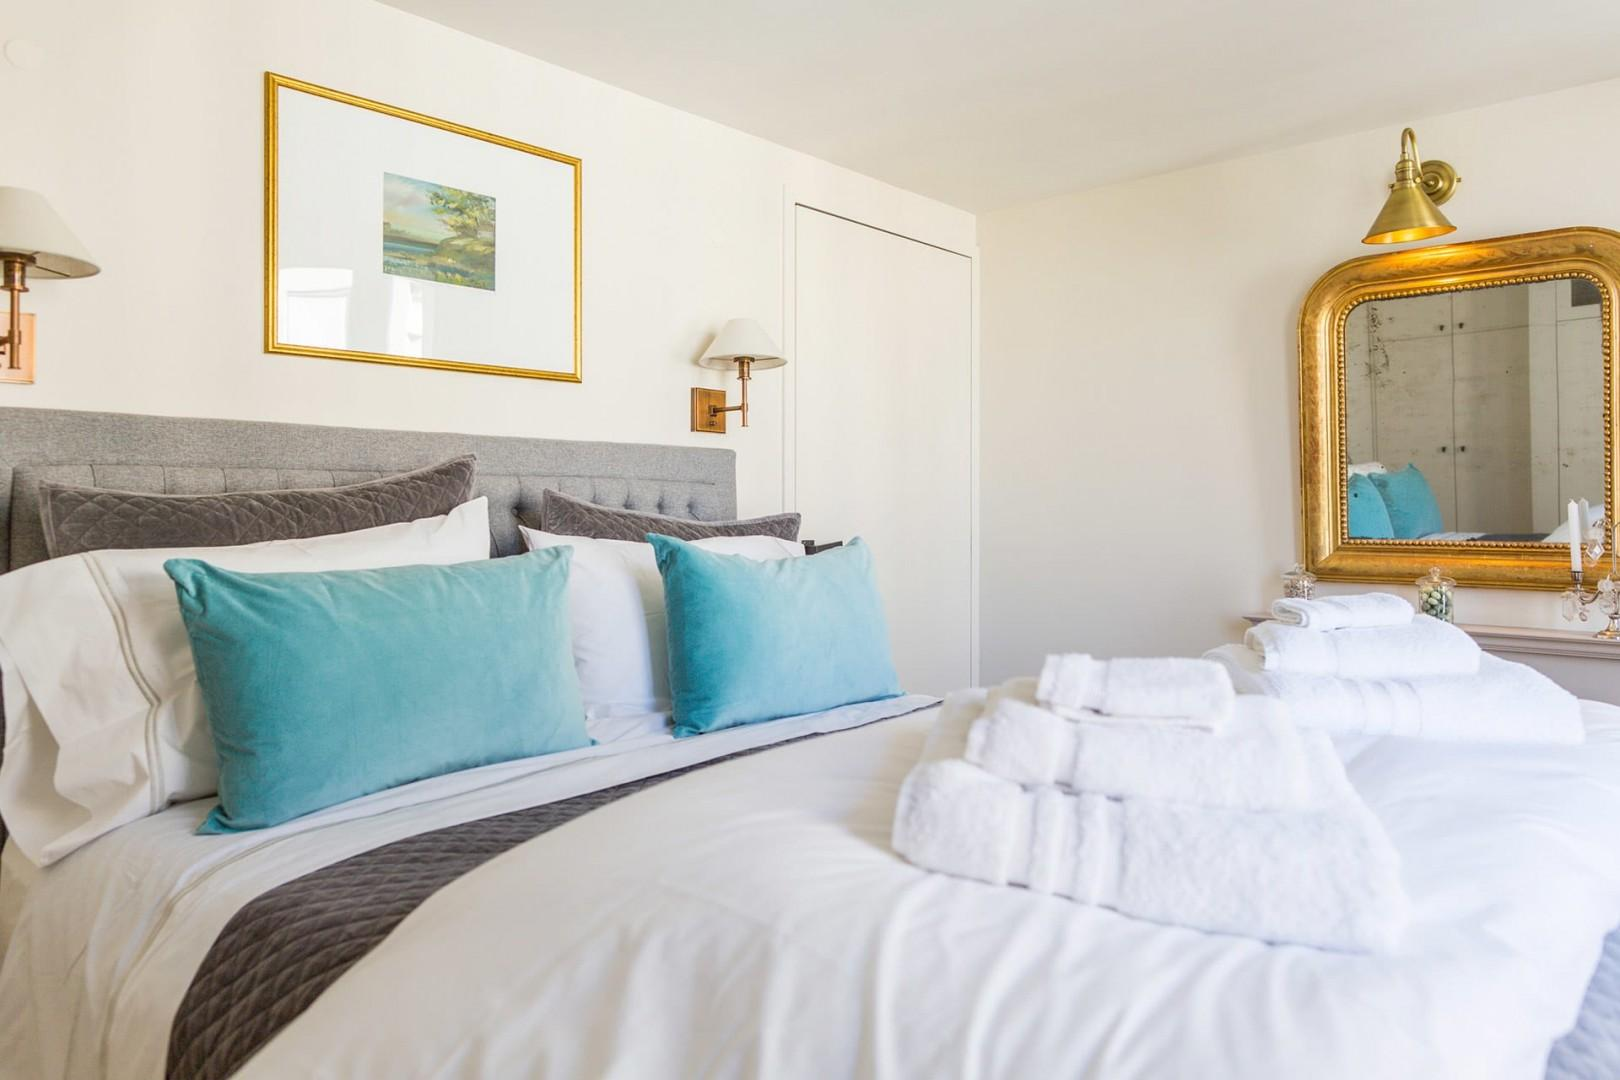 Relax in the stylish bedroom with a comfortable bed and en suite bathroom.